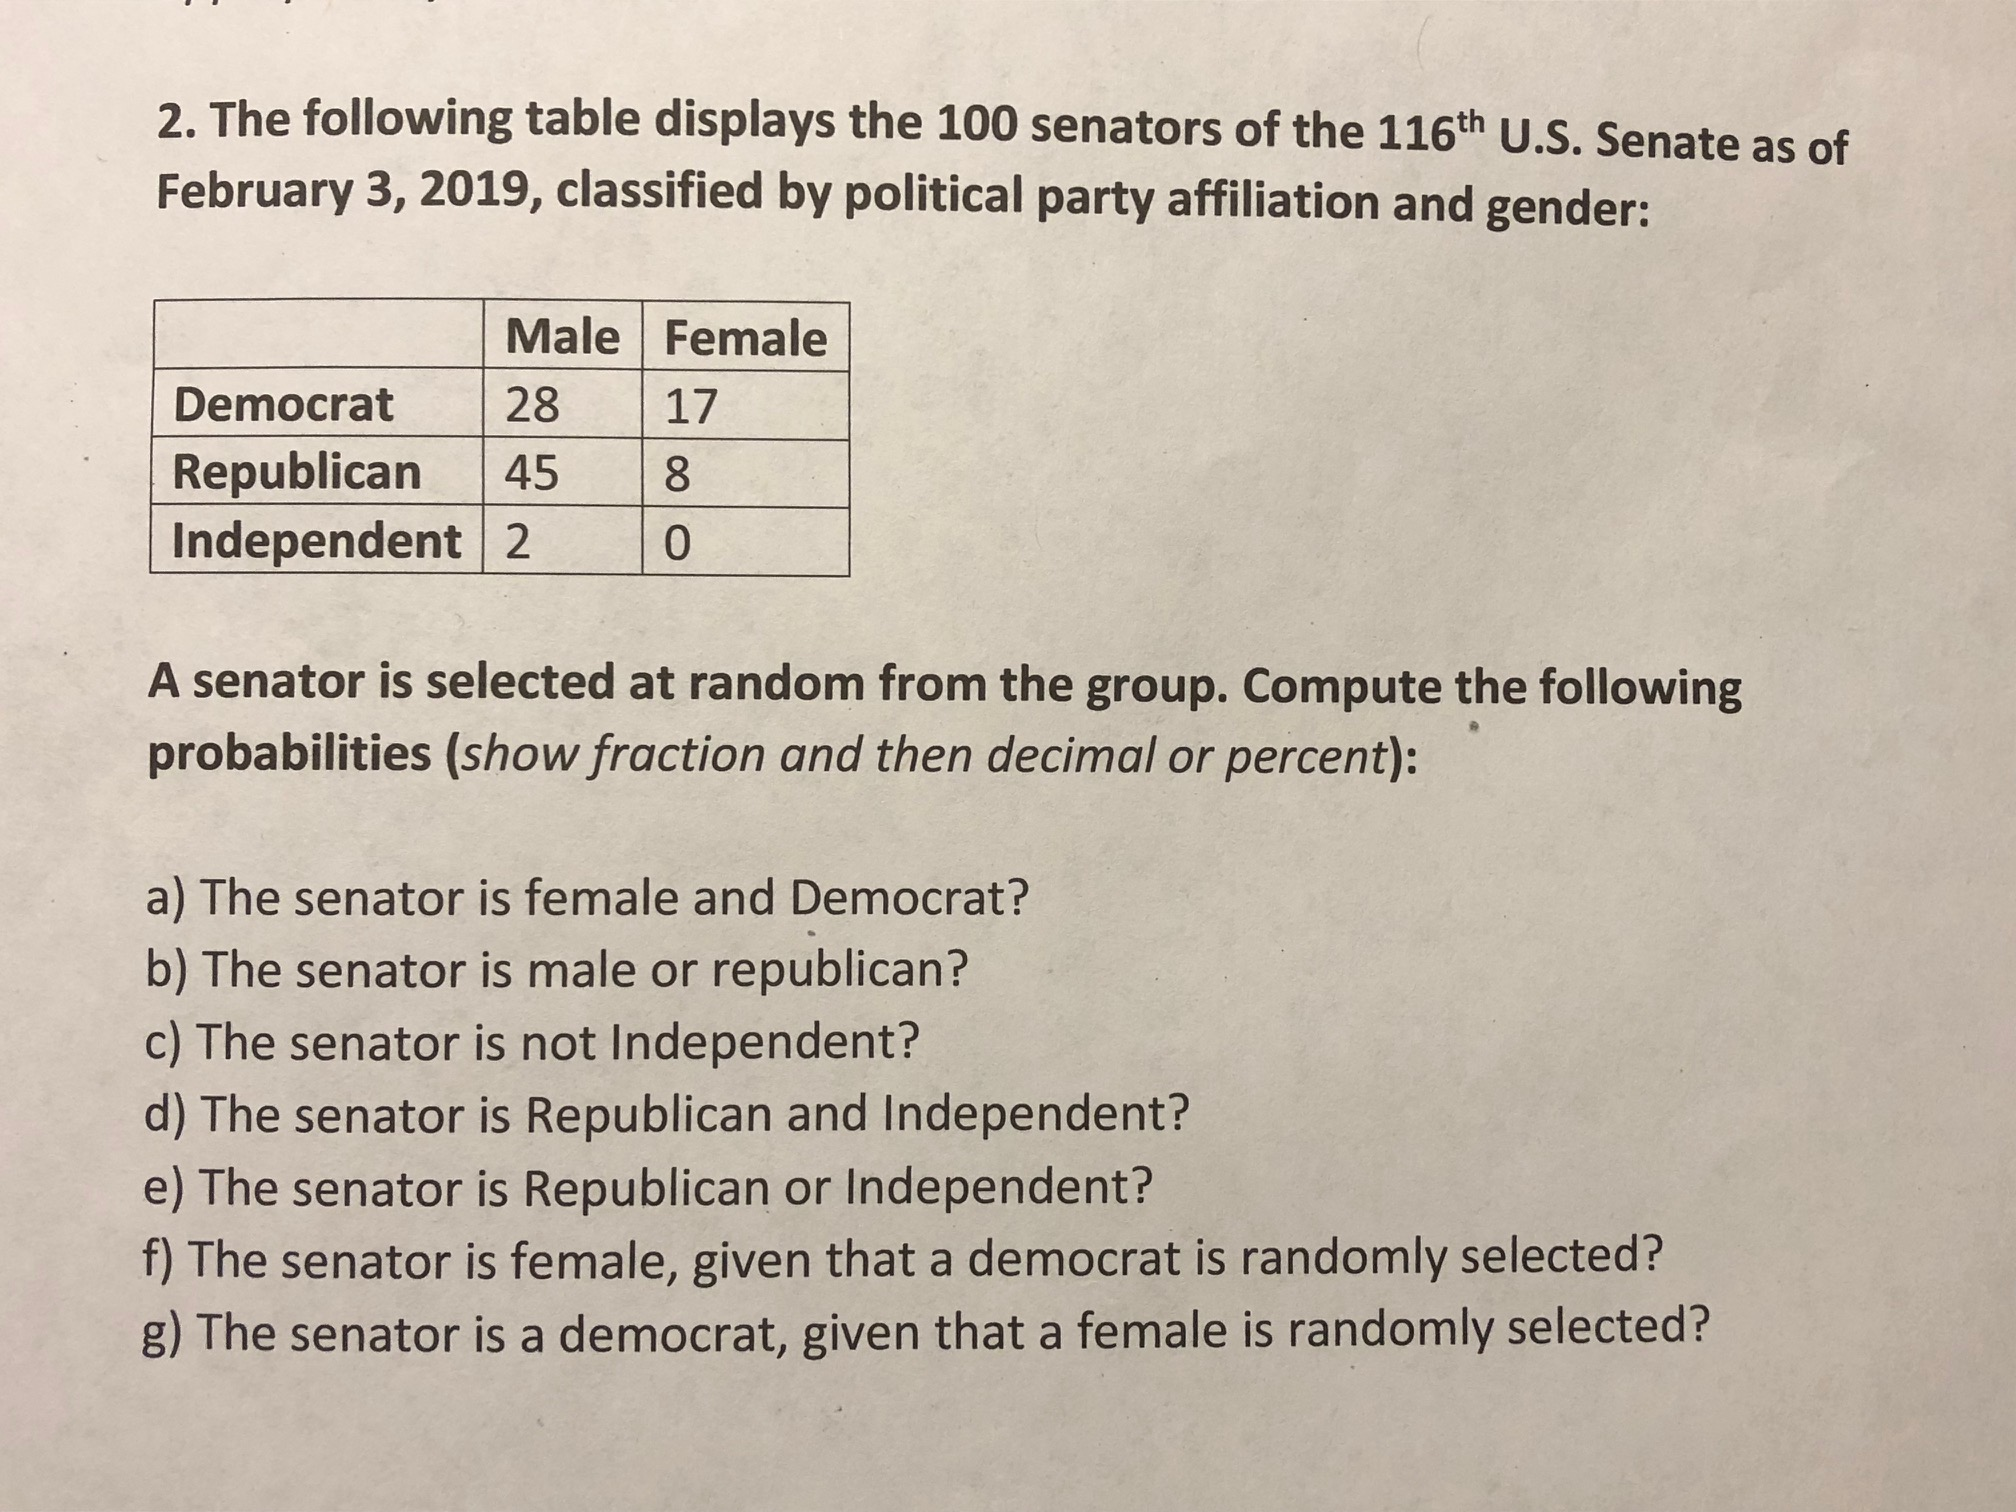 2. The following table displays the 100 senators of the 116th U.S. Senate as of February 3, 2019, classified by political party affiliation and gender: Male Female Democrat 28 17 Republican 458 0 Independent 2 A senator is selected at random from the group. Compute the following probabilities (show fraction and then decimal or percent): a) The senator is female and Democrat? b) The senator is male or republican? c) The senator is not Independent? d) The senator is Republican and Independent? e) The senator is Republican or Independent? f) The senator is female, given that a democrat is randomly selected? g) The senator is a democrat, given that a female is randomly selected?